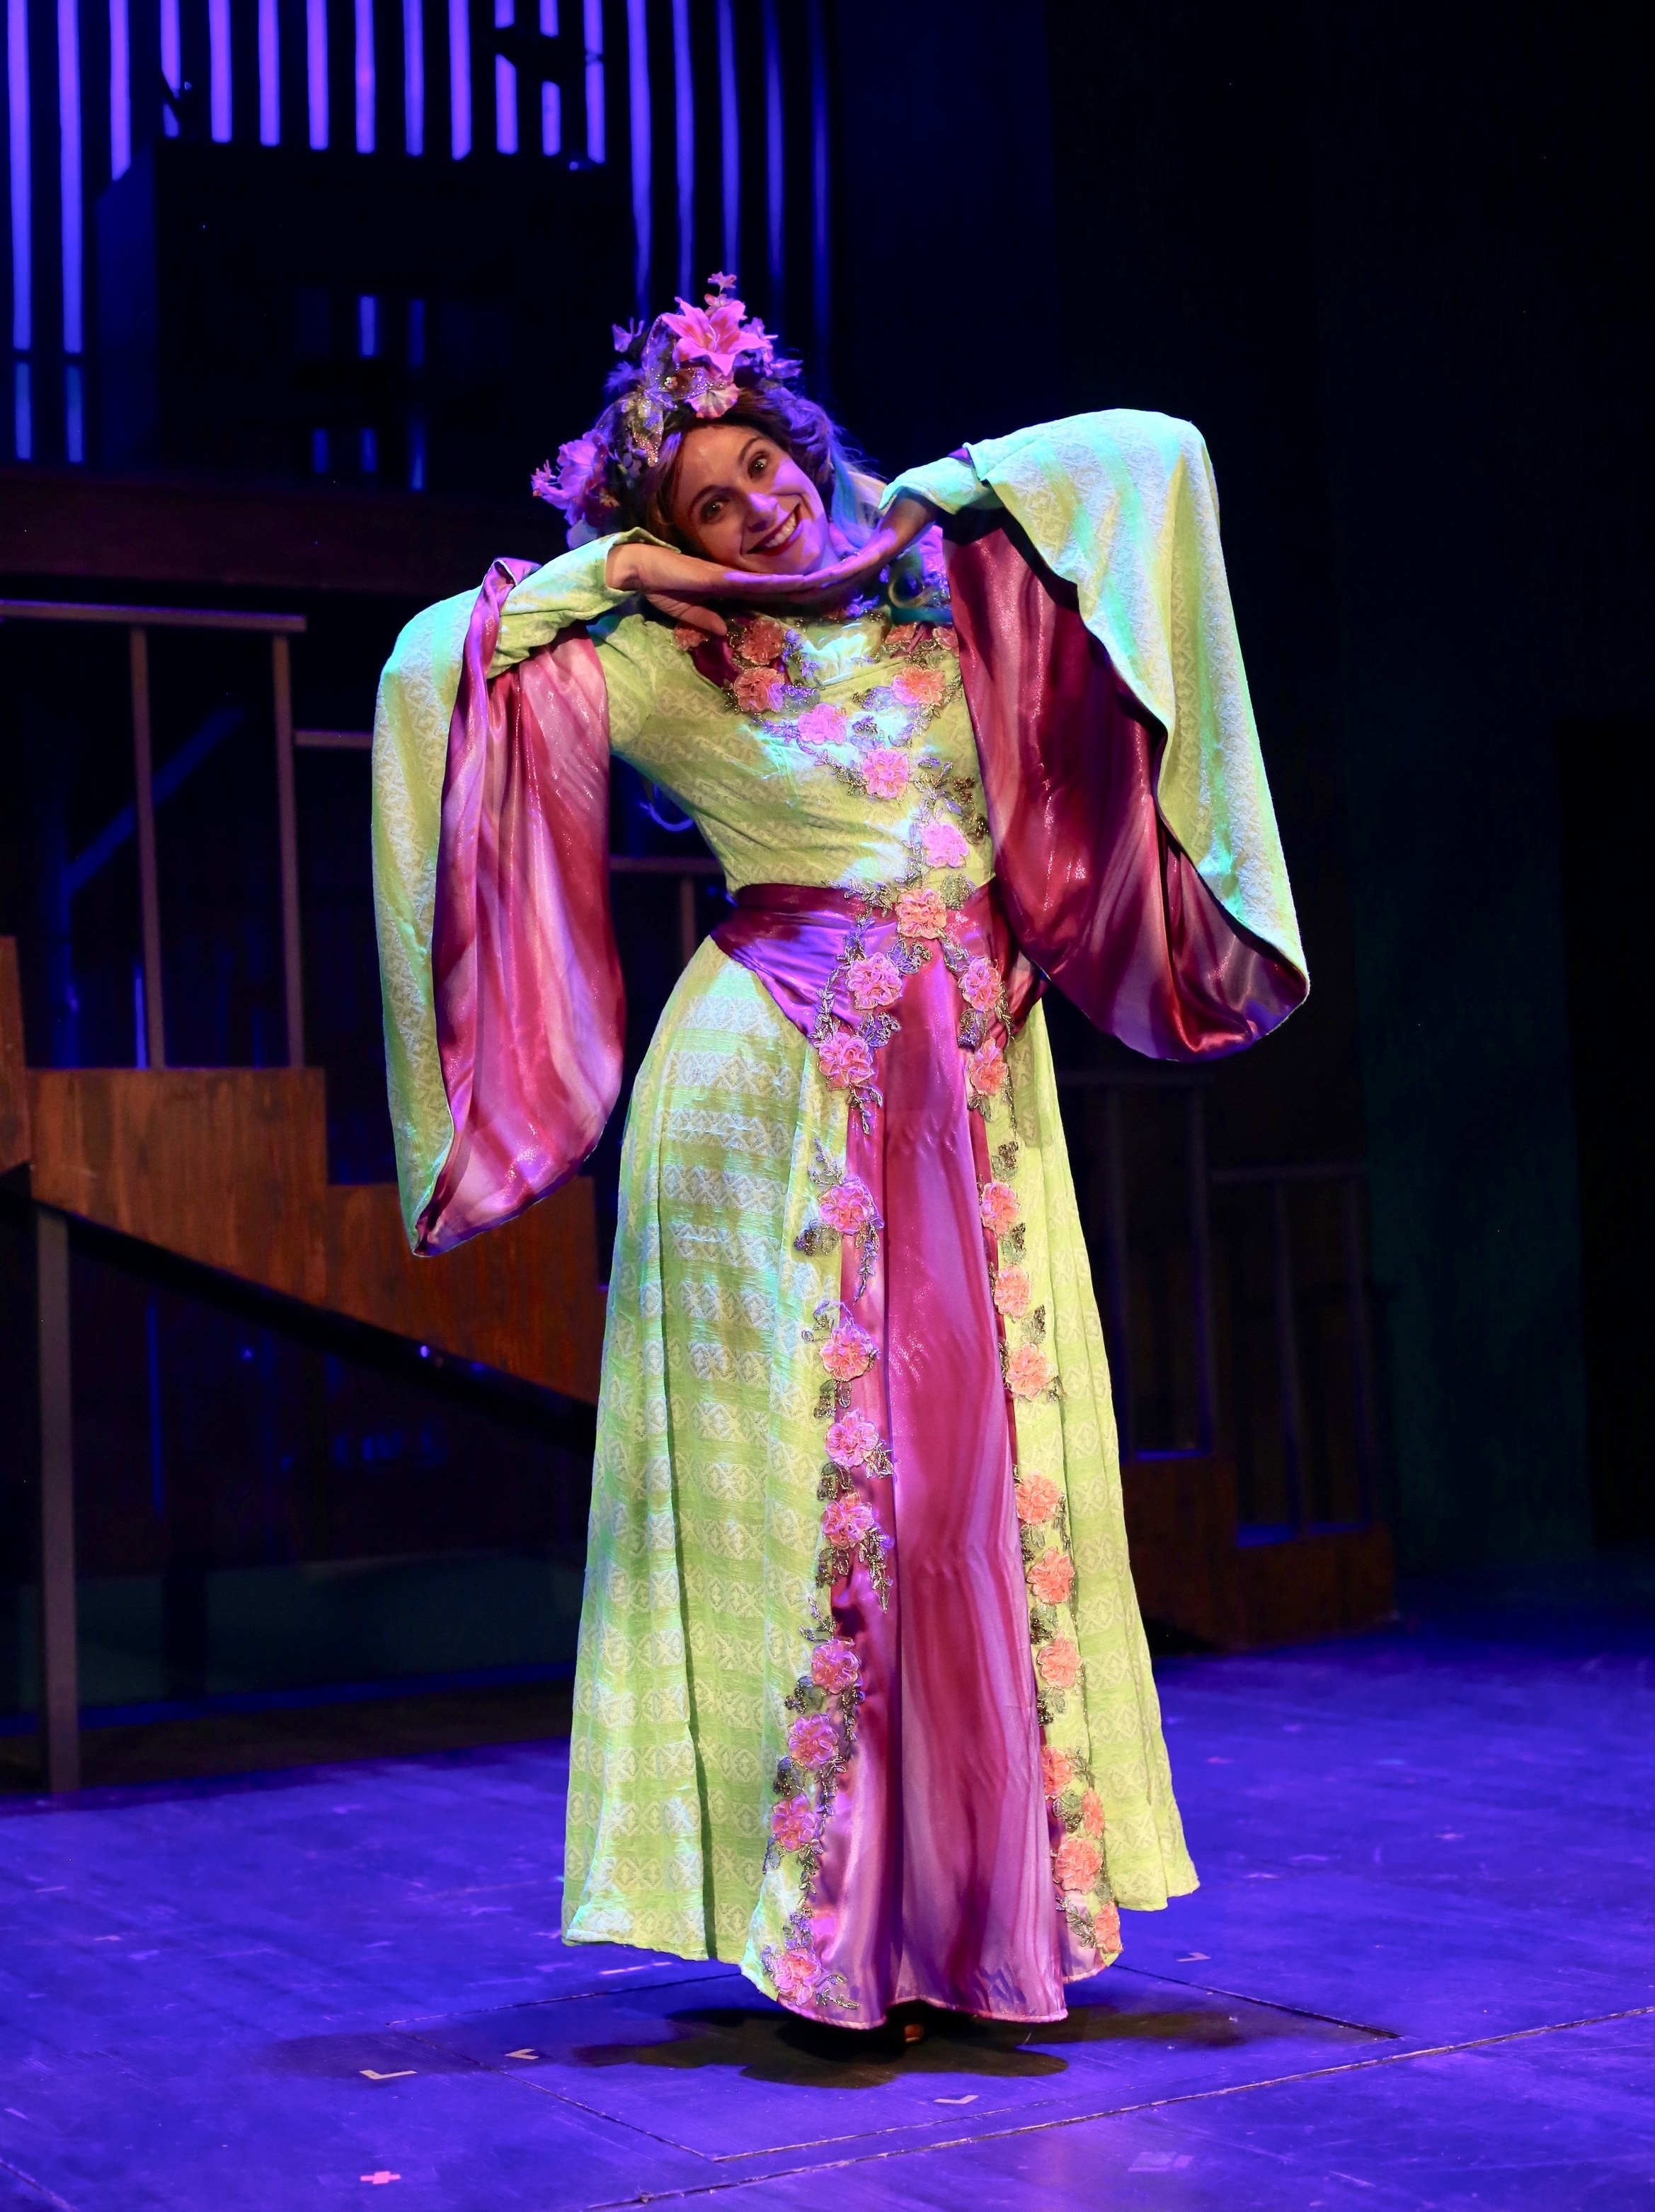 Potion Notion Dress  9 to 5- Creede Repertory Theatre 2018  Costume Design by Tatyana De Pavloff. Photo Courtesy of John Gary Brown.